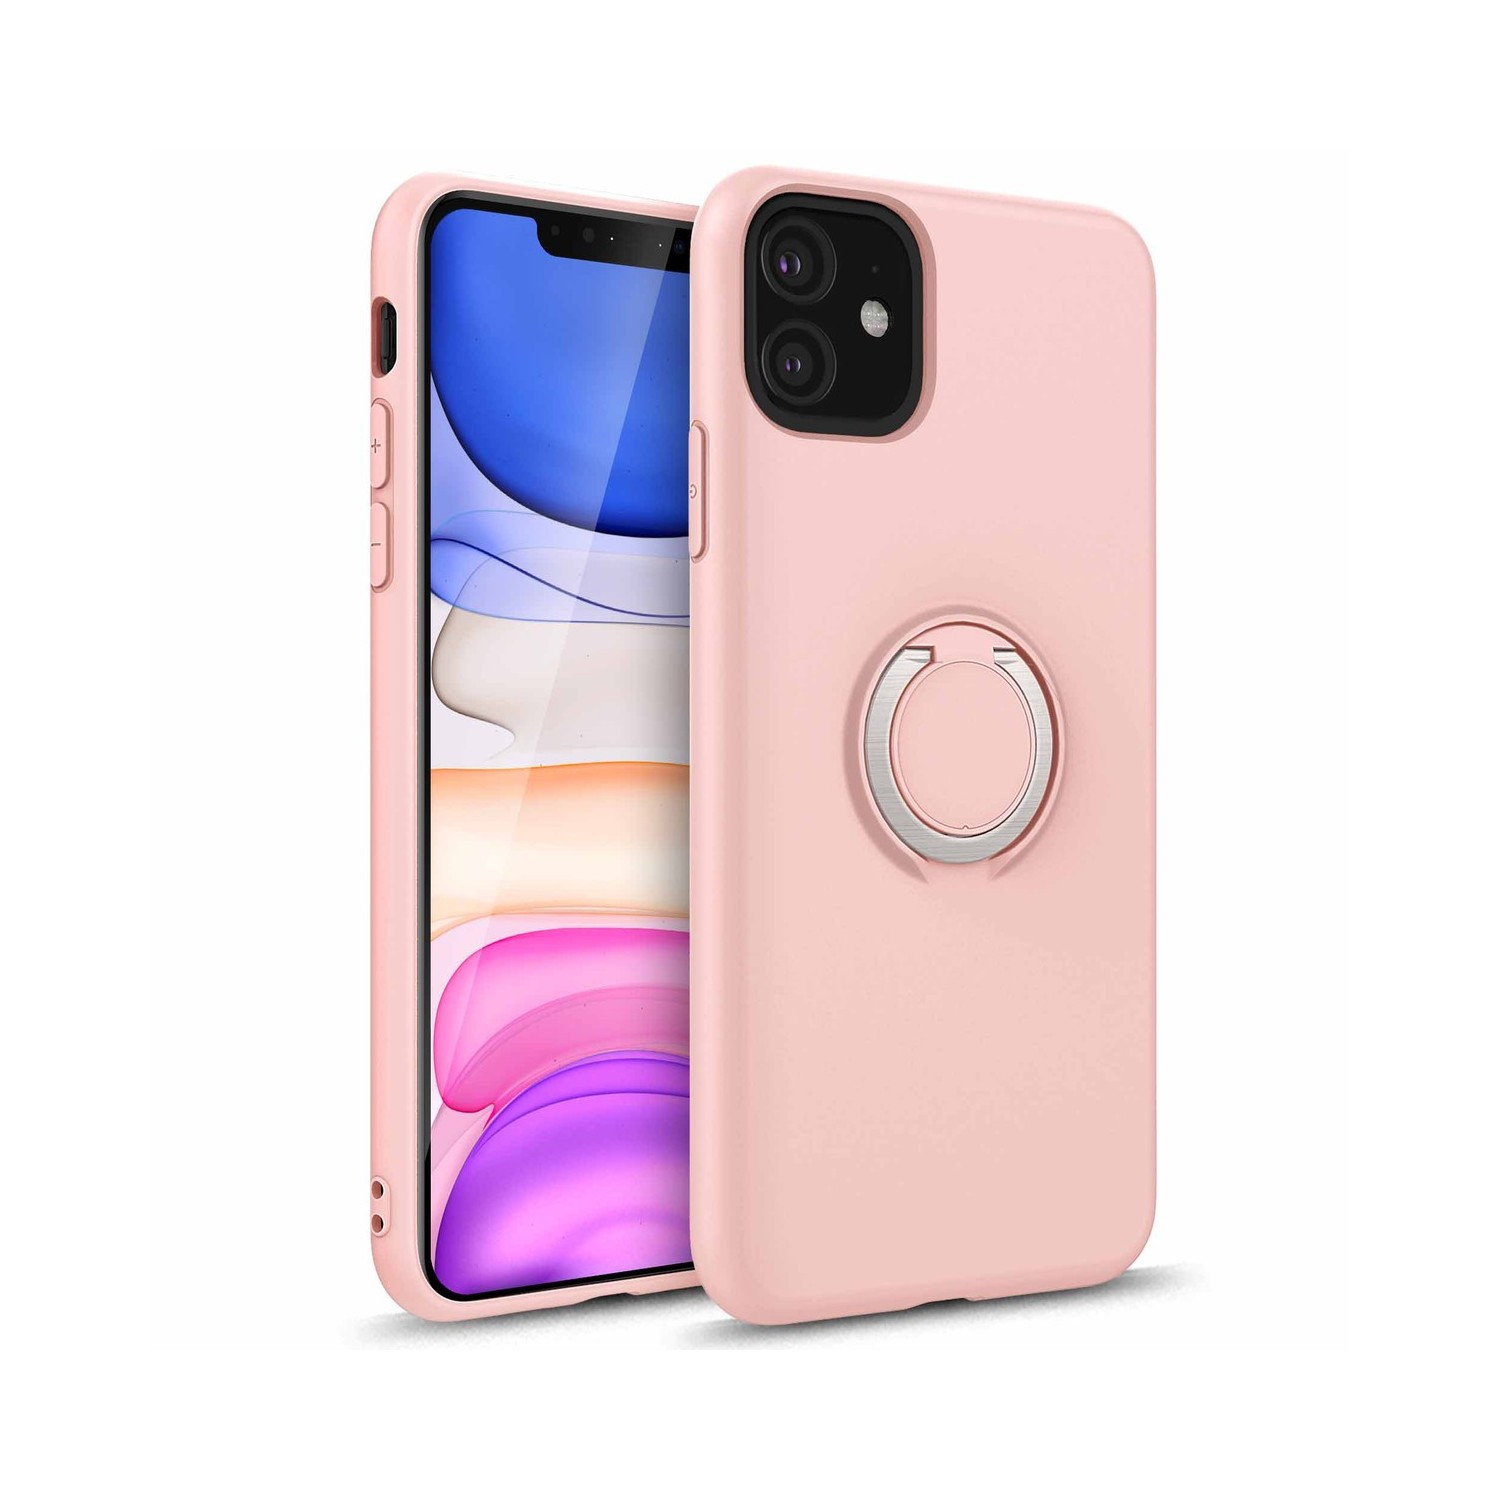 Case - Zizo® Revolve Case for iPhone 11 Pink